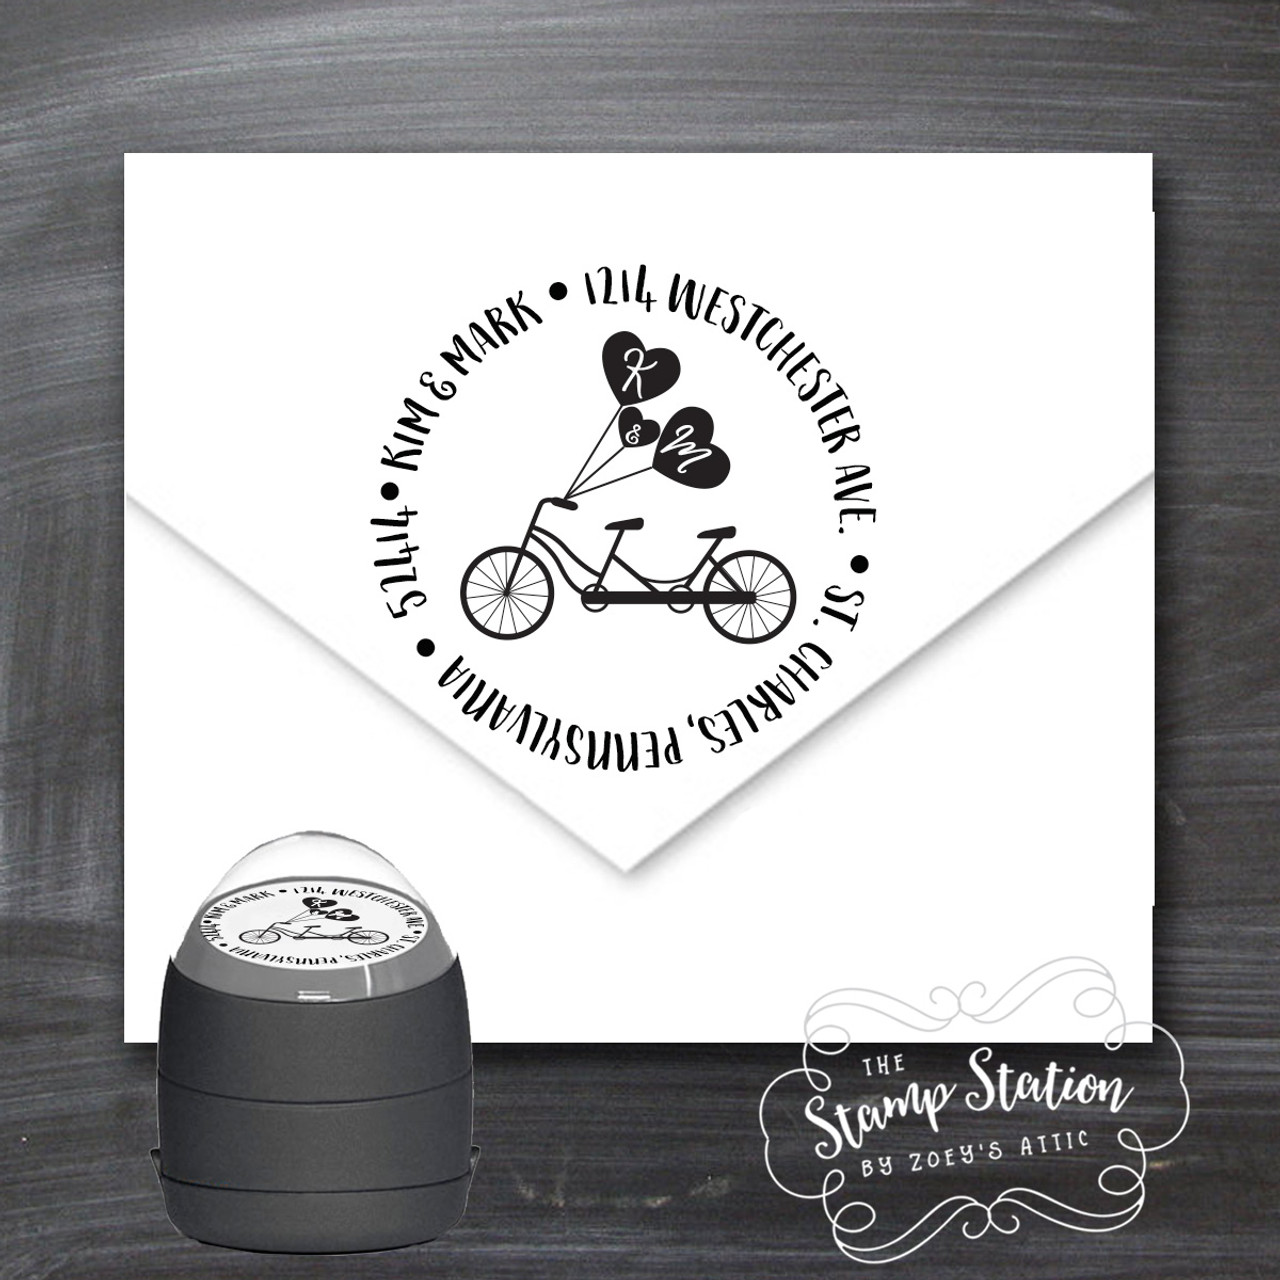 return address round ink stamp couple first names and initials self